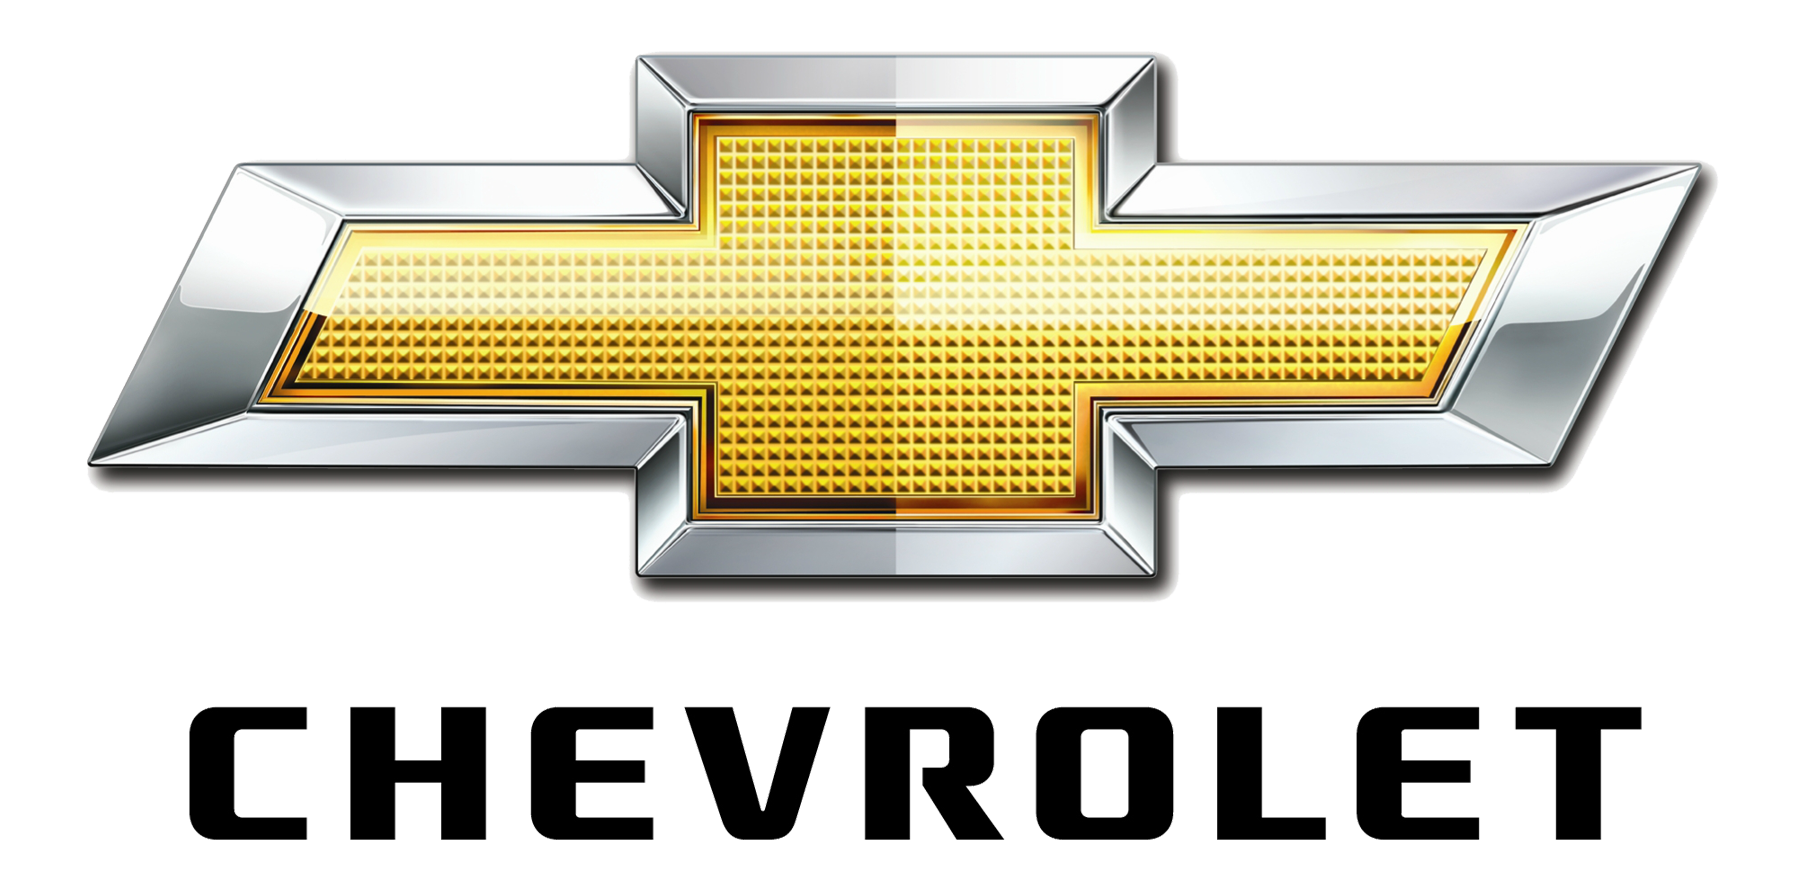 chevrolet-high-resolution-logo-download-png.png